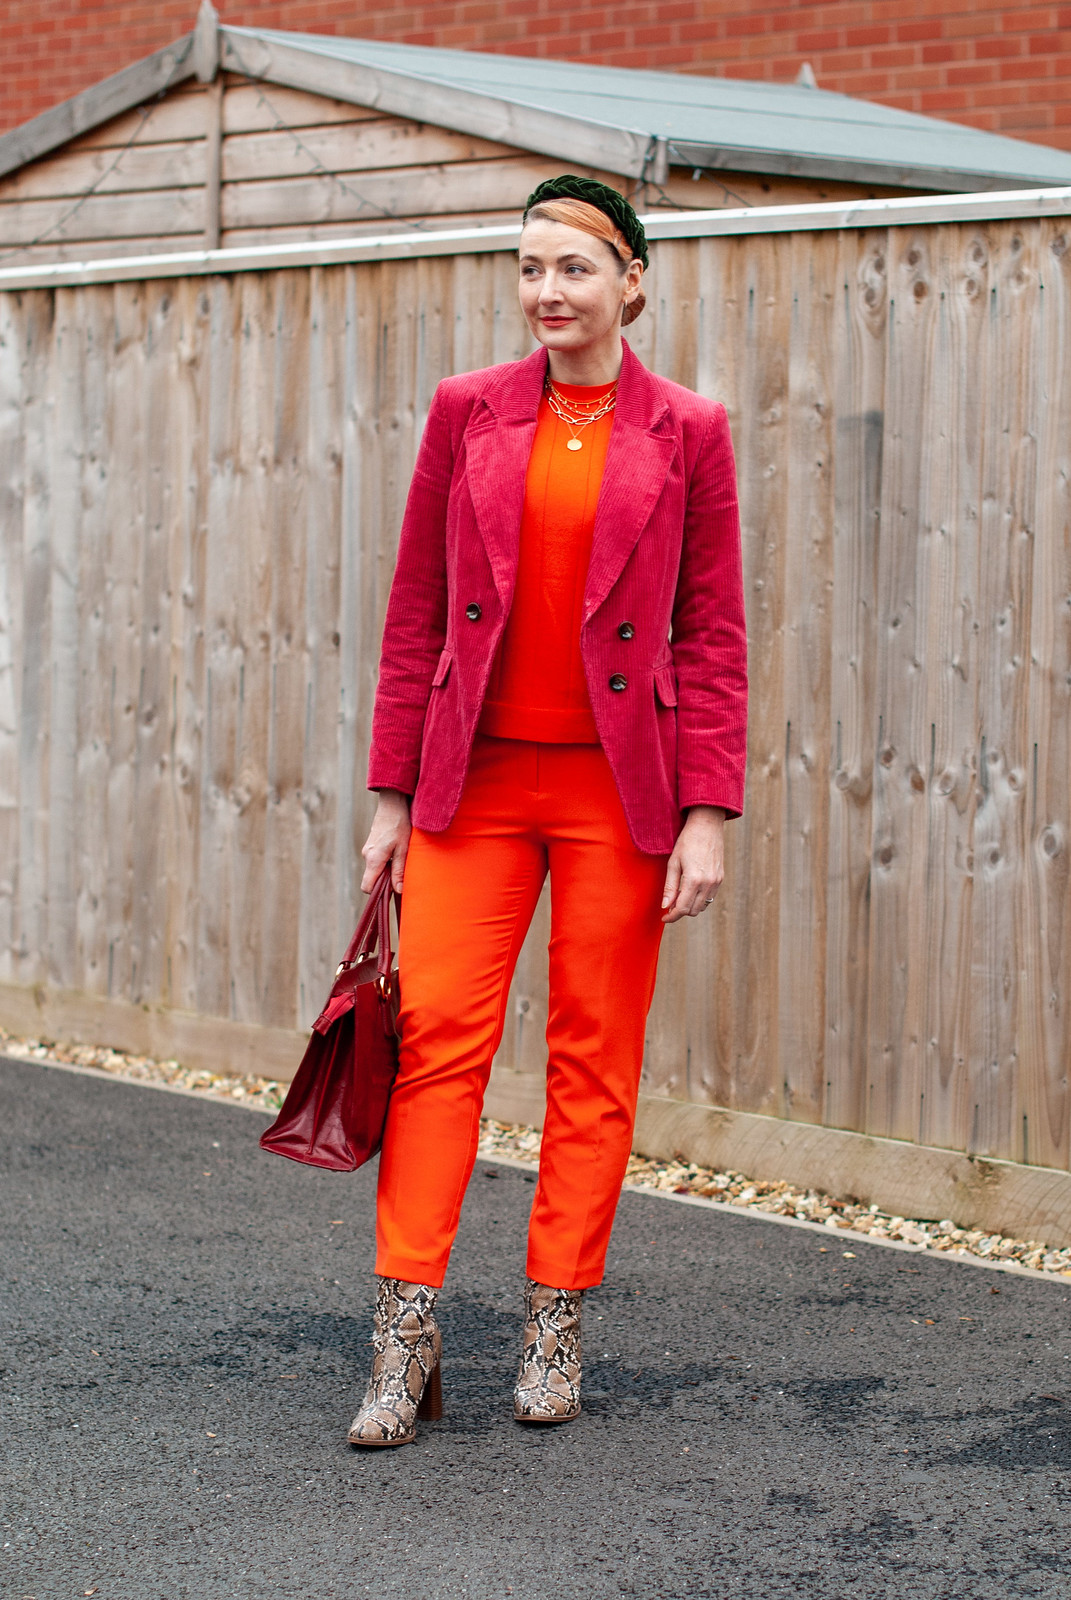 How to Wear Red With Orange: red corduroy blazer, orange sweater, orange tailored trousers, snakeskin boots | Not Dressed As Lamb, over 40 style blog